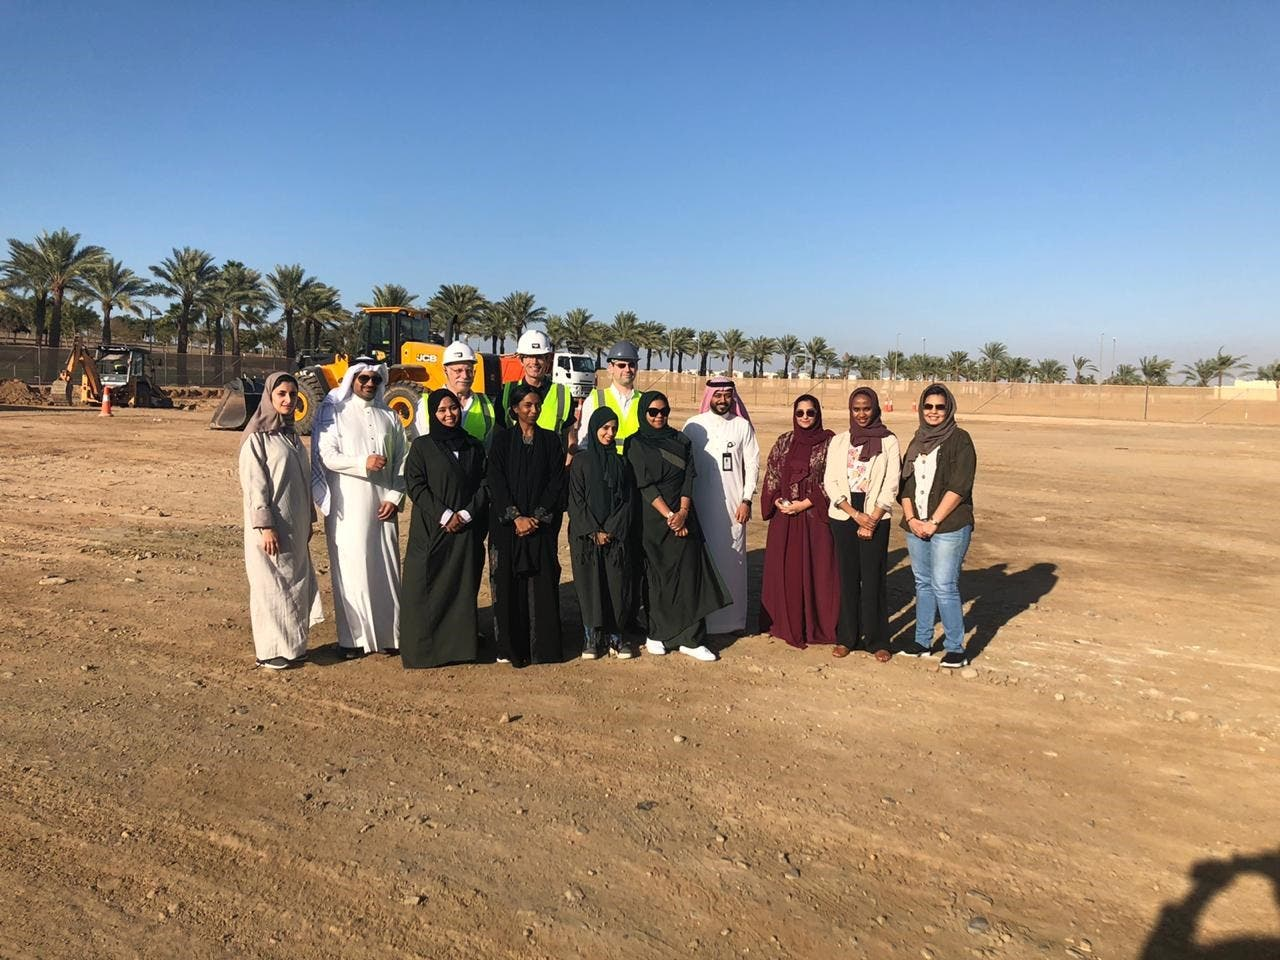 The SaudiVax team on the land where the first biological manufacturing center in the Middle East will be built, on the campus of KAUST, in January 2020. (Supplied)